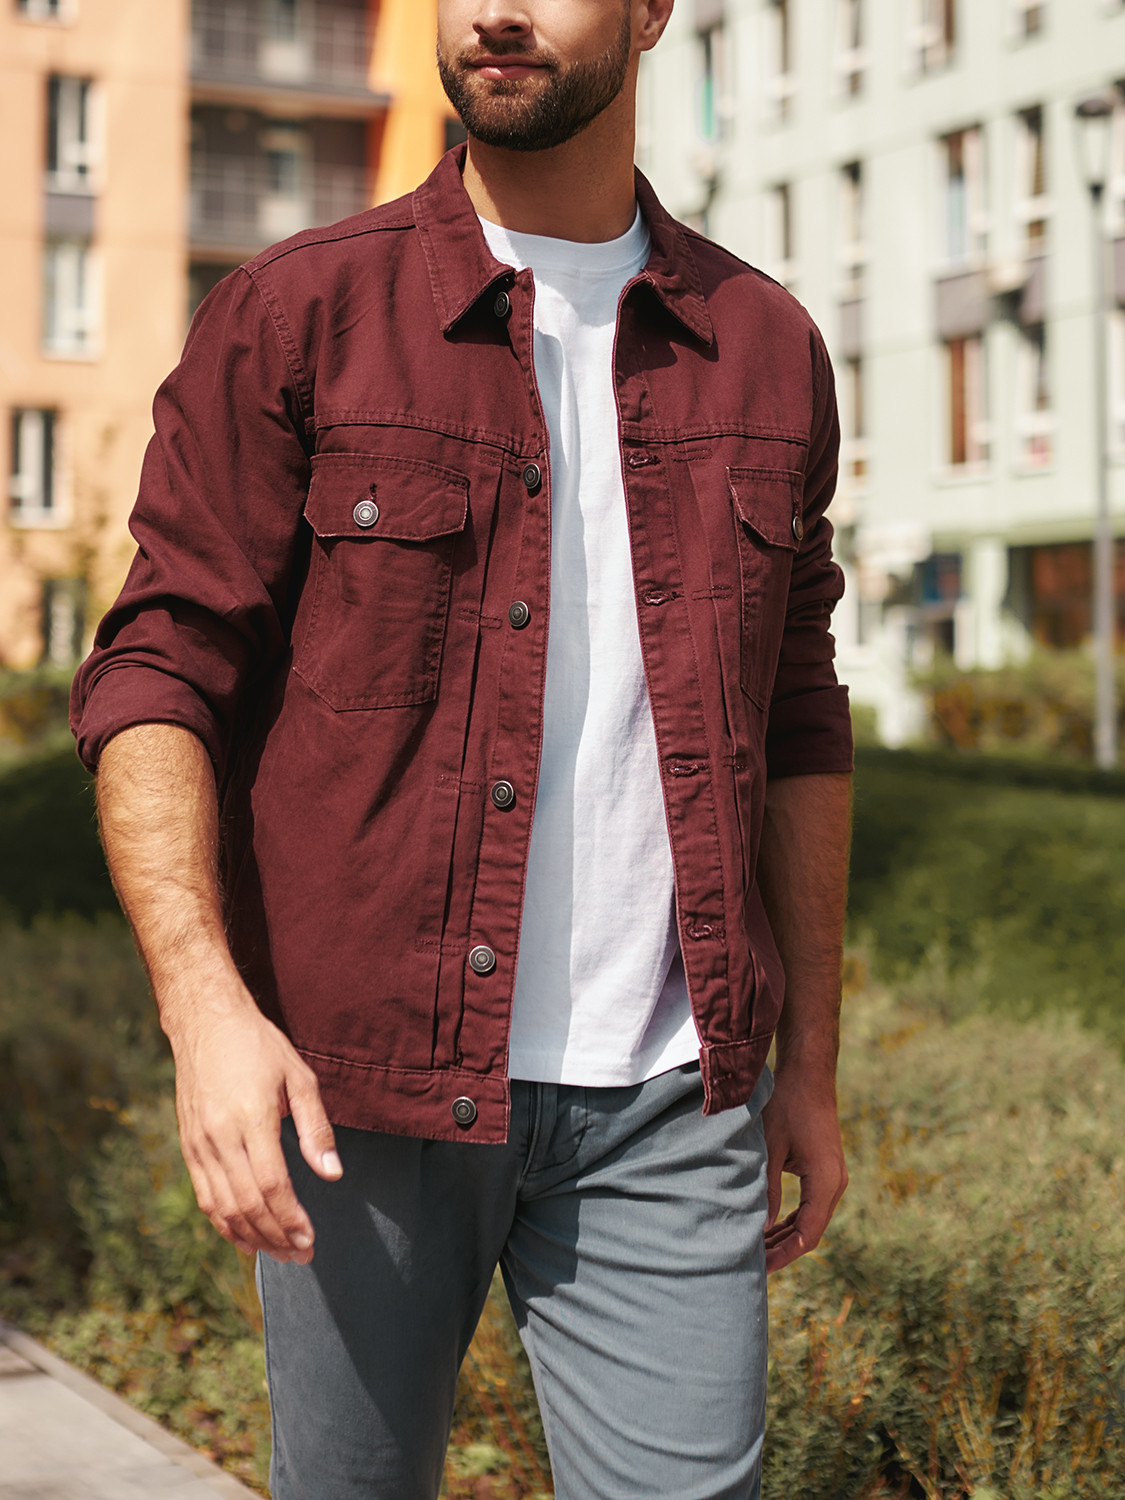 Men's outfit idea for 2021 with red overshirt, white crew neck t-shirt, grey chinos, white sneakers. Suitable for spring and fall.